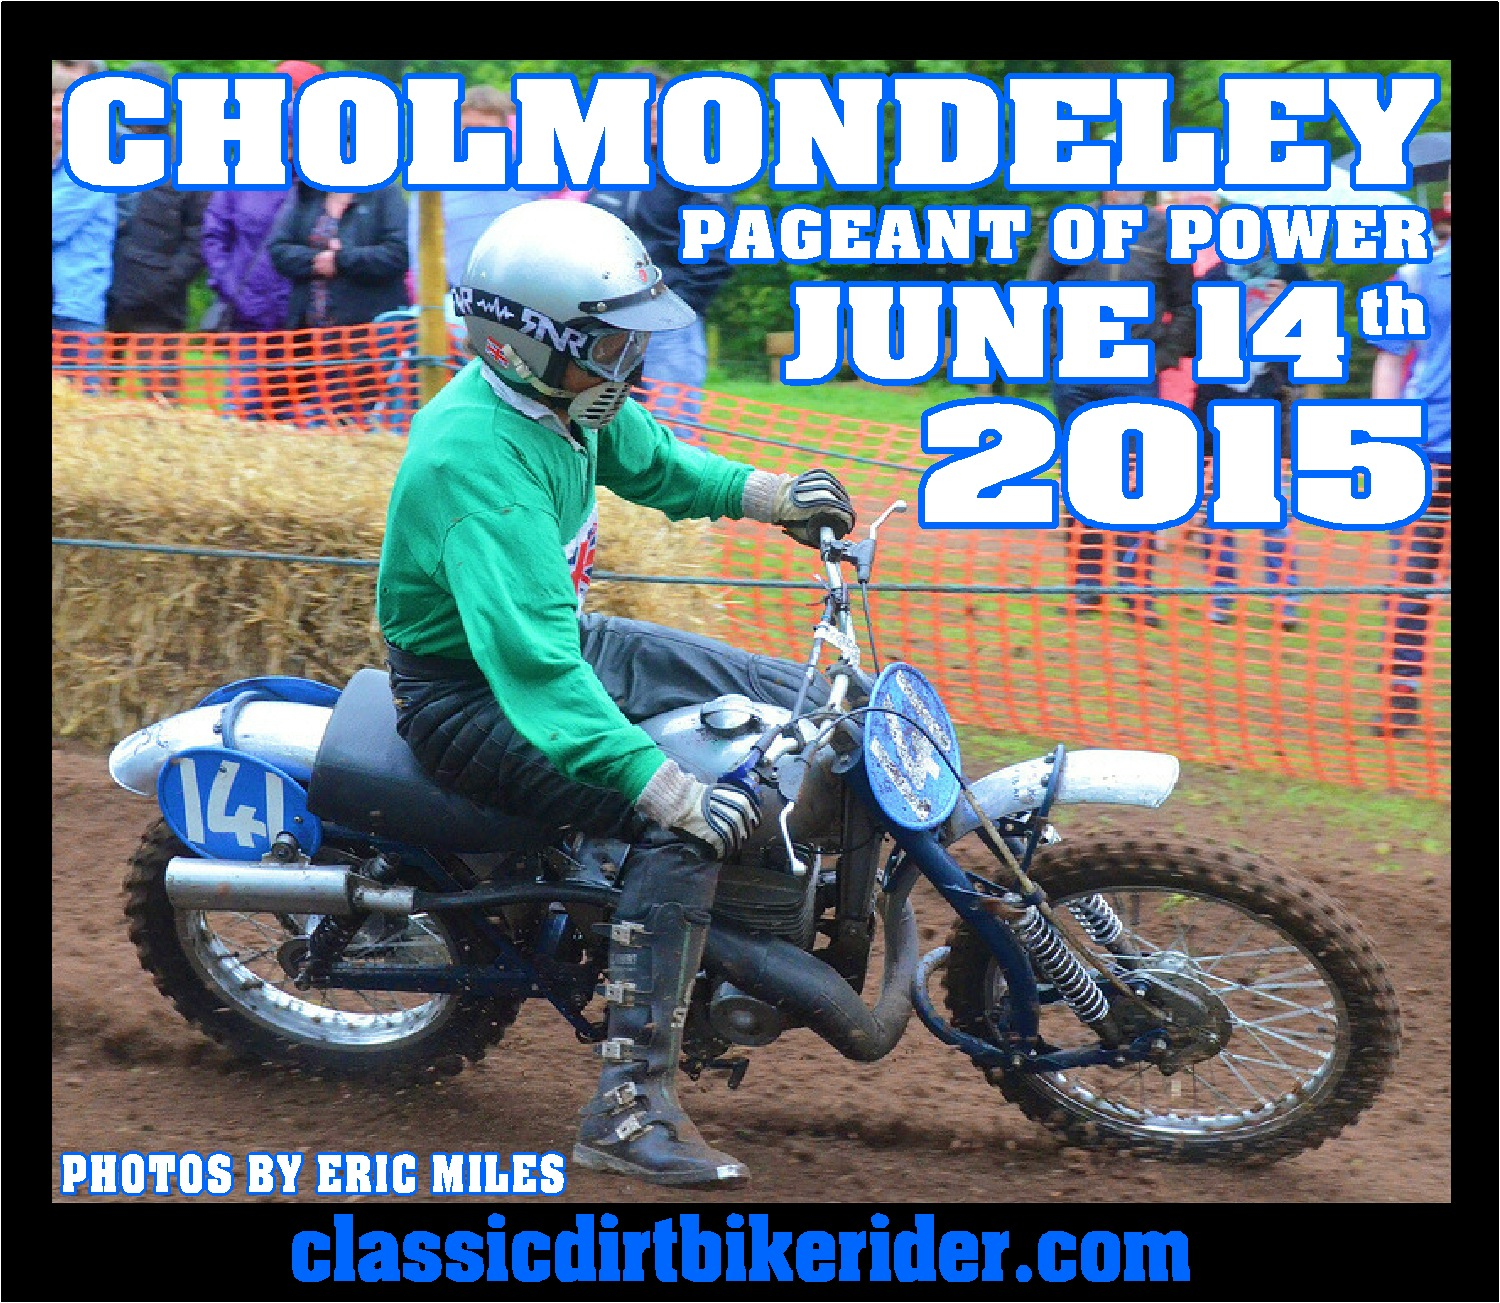 cholmondeley pageant of power 2015 photo image picture classicdirtbikerider.com classic scrambles scramble